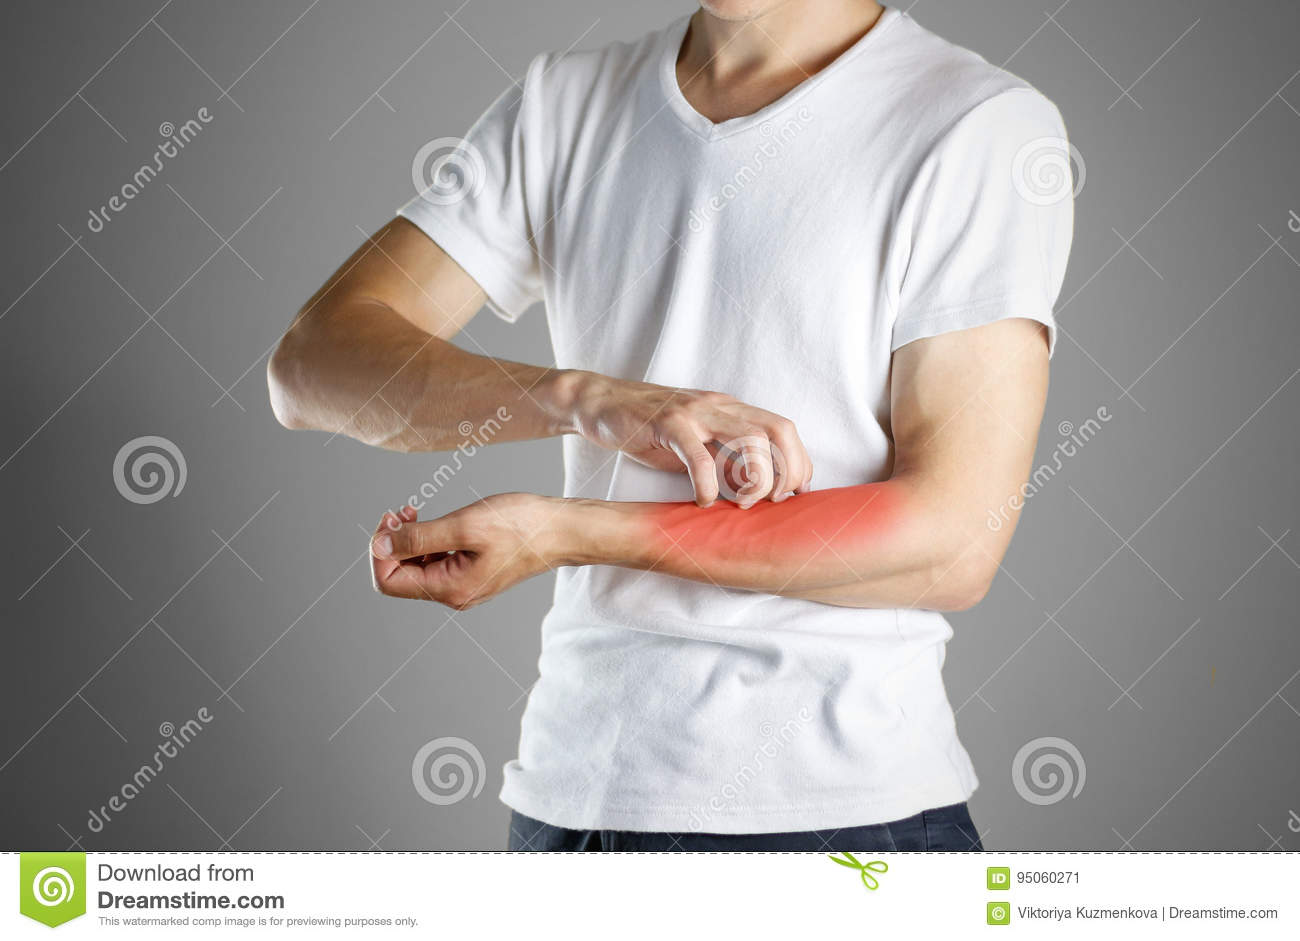 Guy in white shirt scratching his arm. Scabies. Scratch the hand